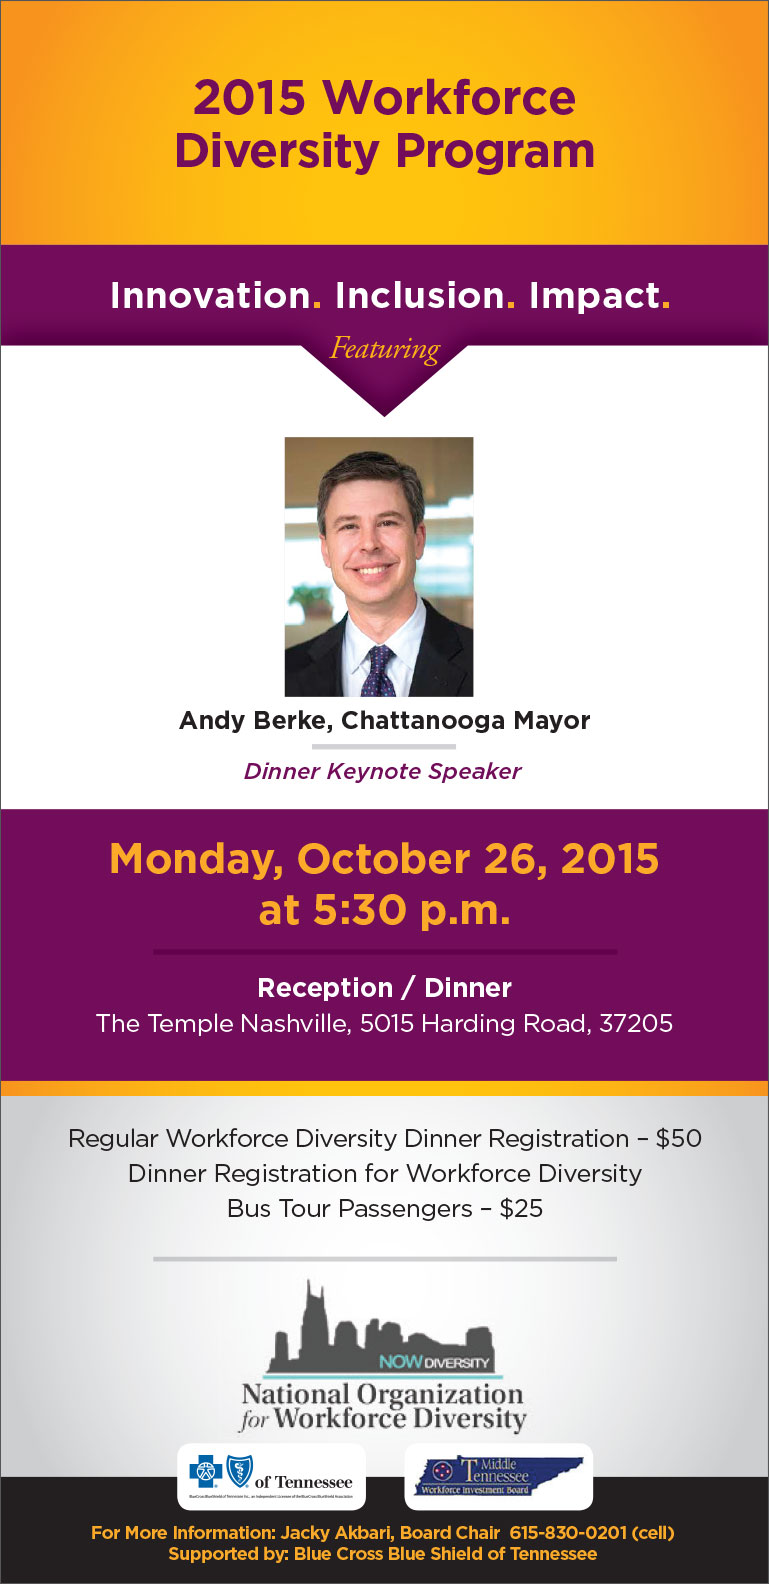 workforceDiversitySummit_dinnerOnly